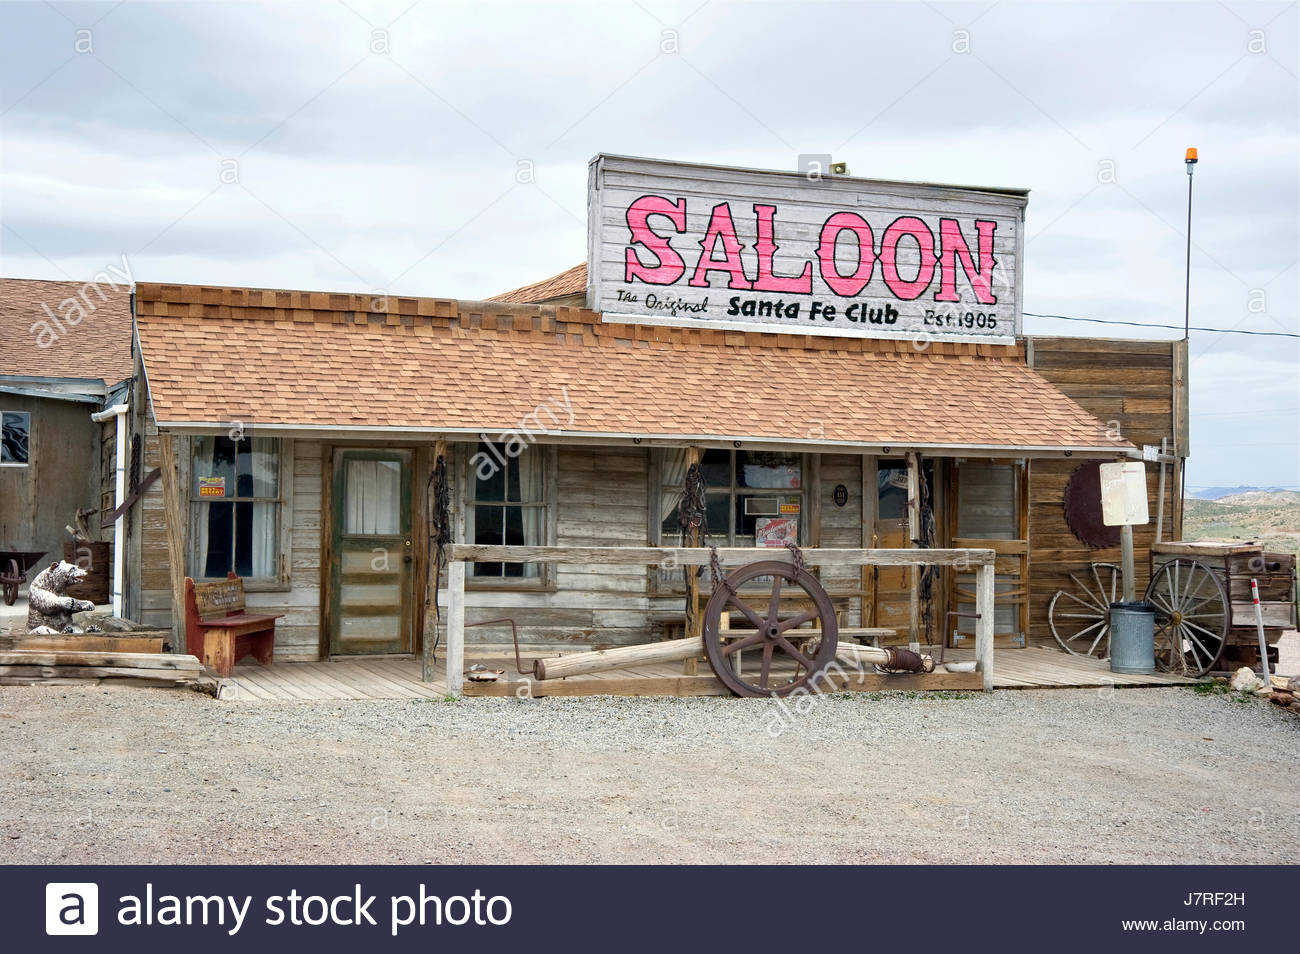 Old west style Saloon in the ghost town of Goldfield, Nevada, USA - Stock Image